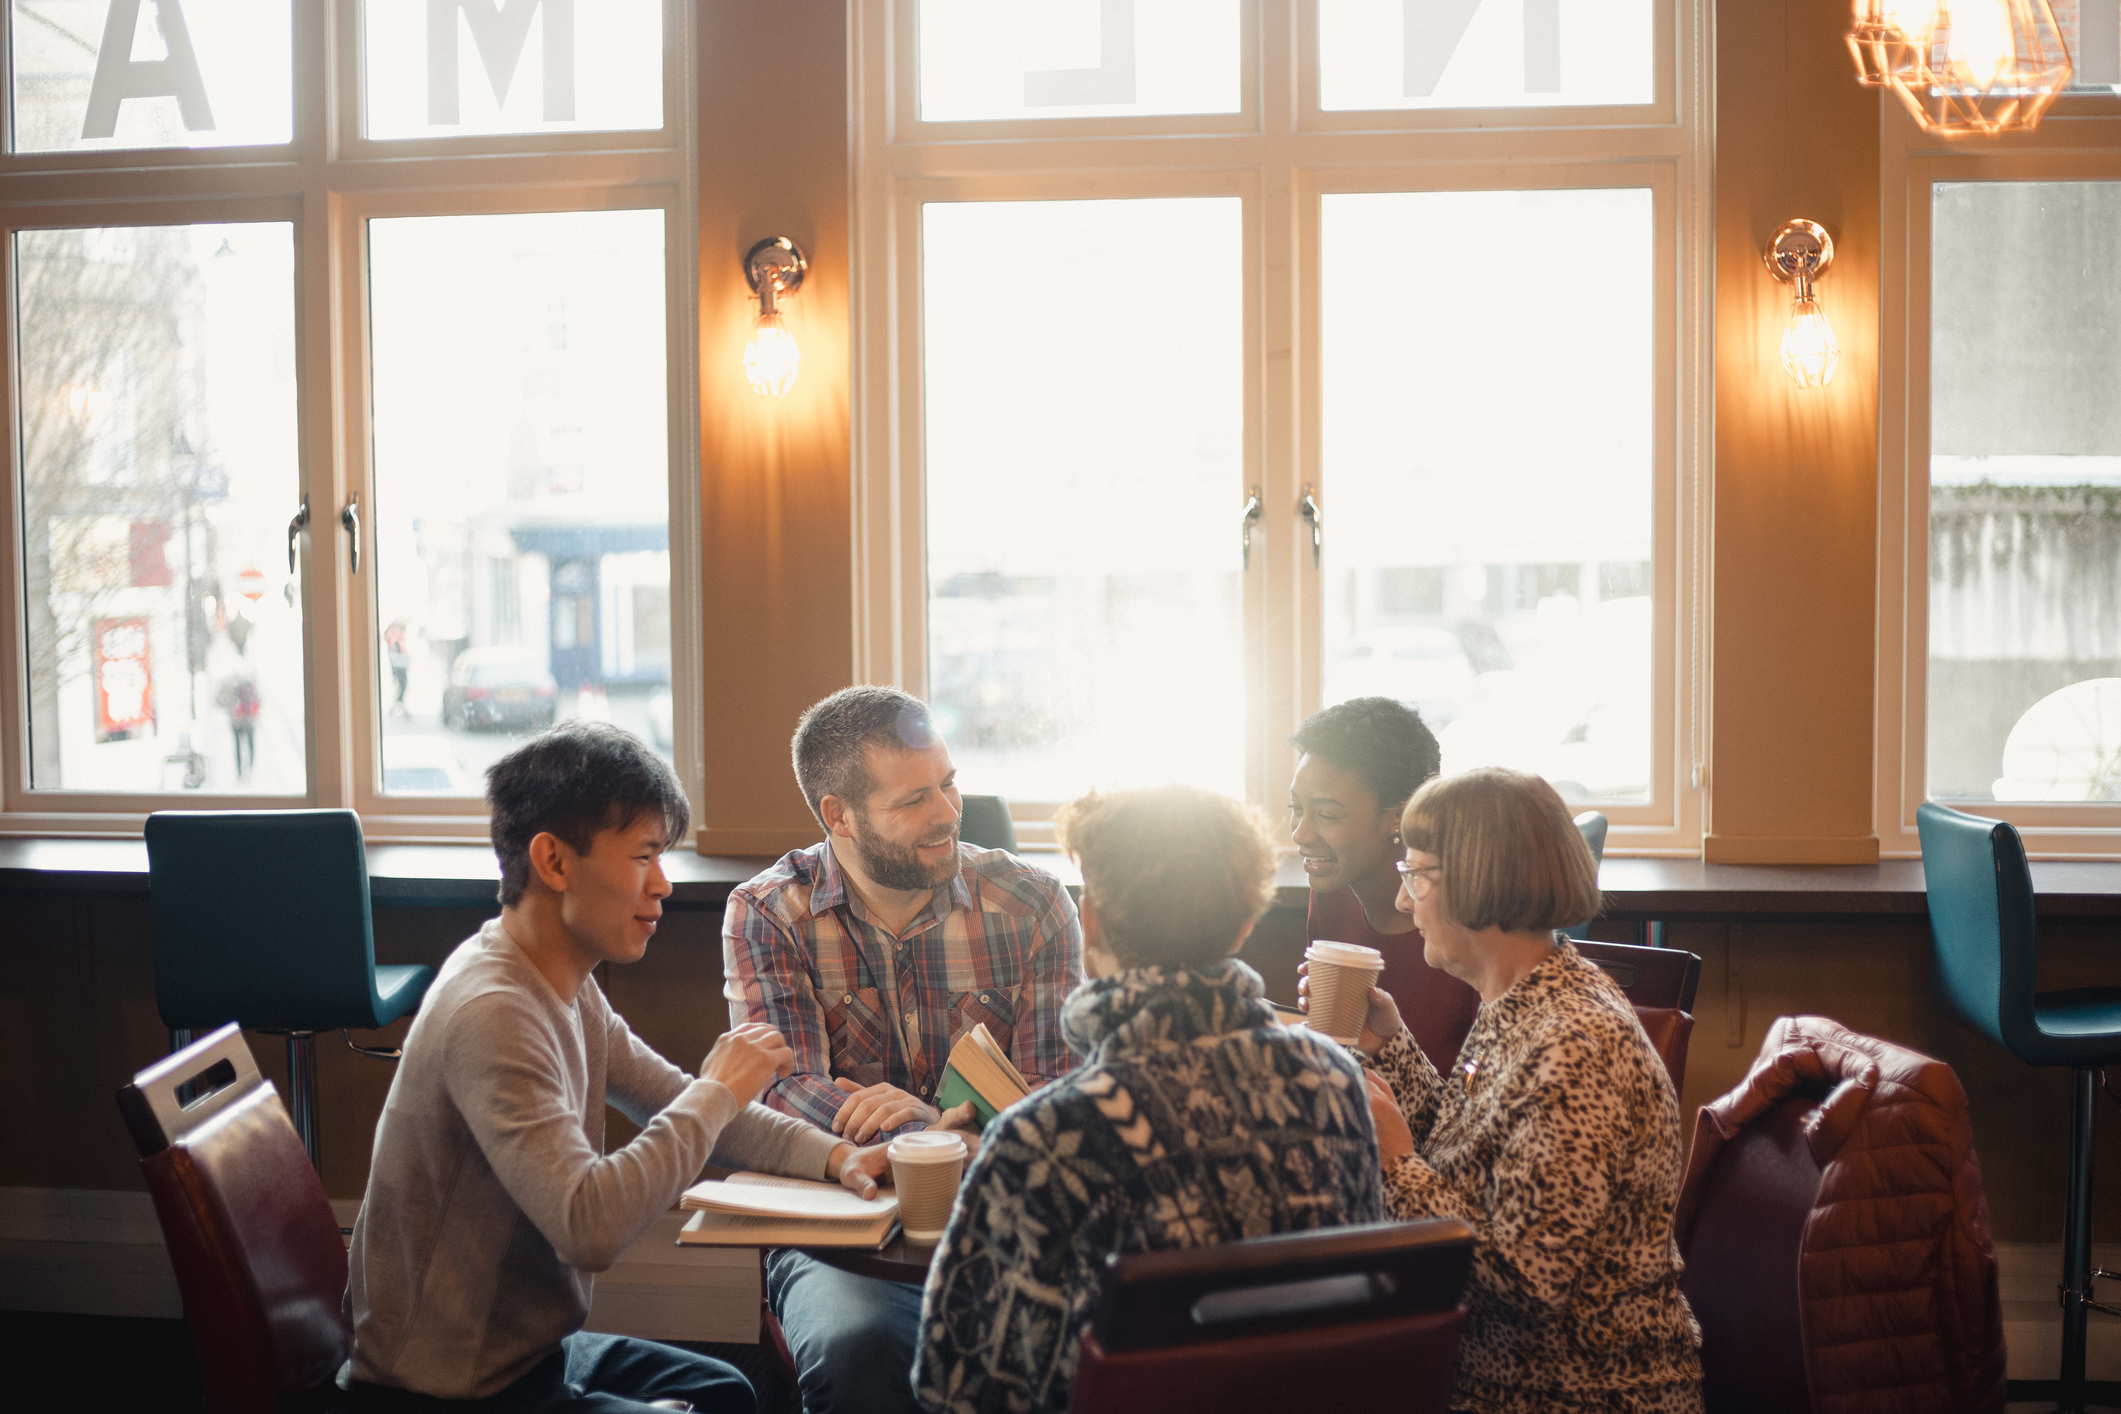 Small group of people with a mixed age range sitting around a table in a cafe. They are talking during a book club.